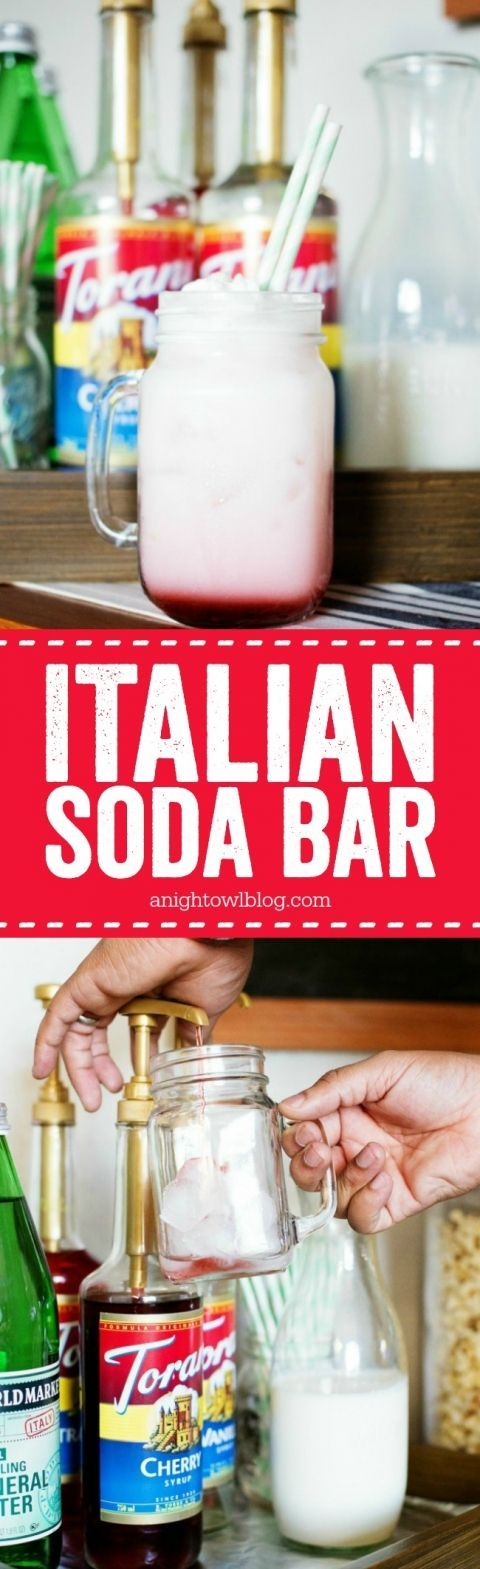 For your next party, put together a @ToraniFlavor Italian Soda Bar! Delicious and fun for guests!